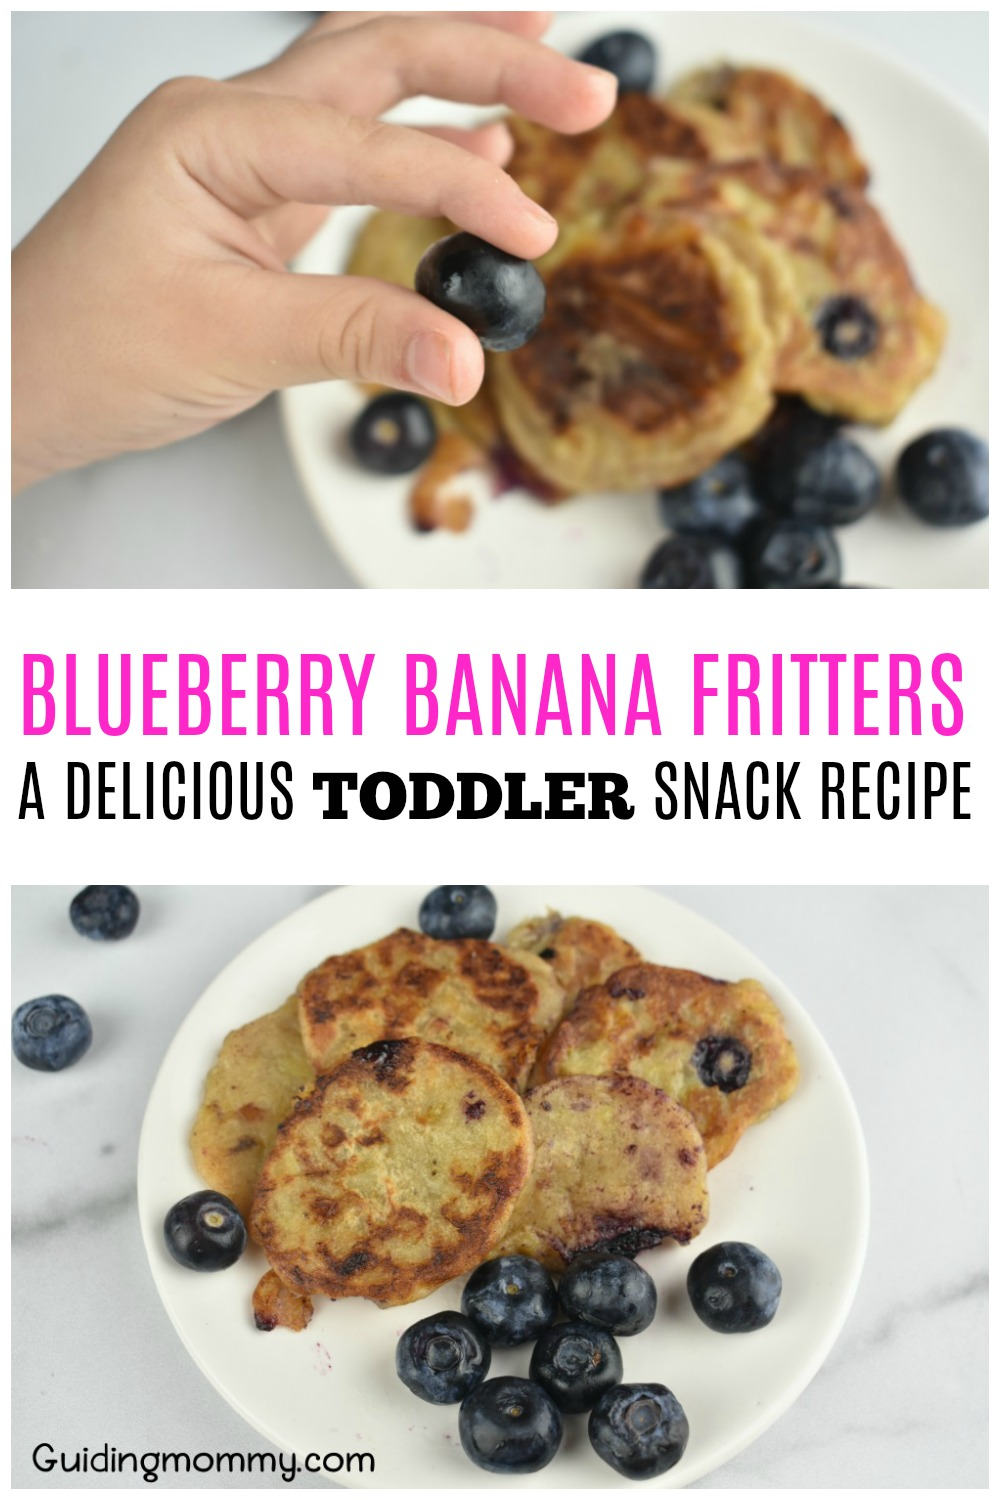 Blueberry Banana Fritters - A delicious toddler snack recipe